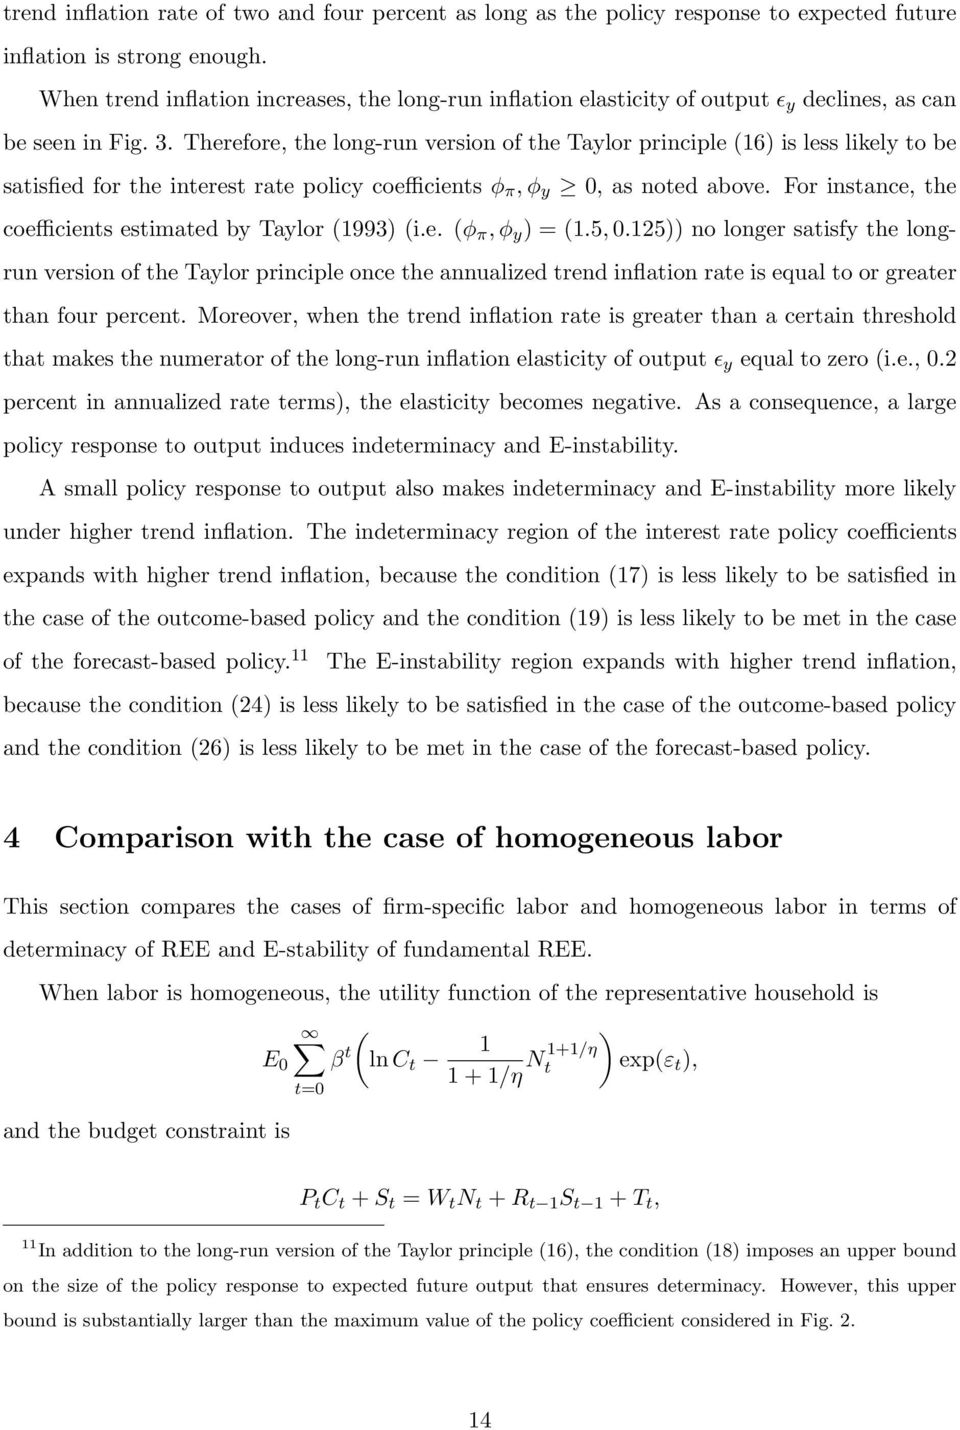 Therefore, the long-run version of the Taylor principle (16) is less likely to be satisfied for the interest rate policy coefficients ϕ π, ϕ y, as noted above.